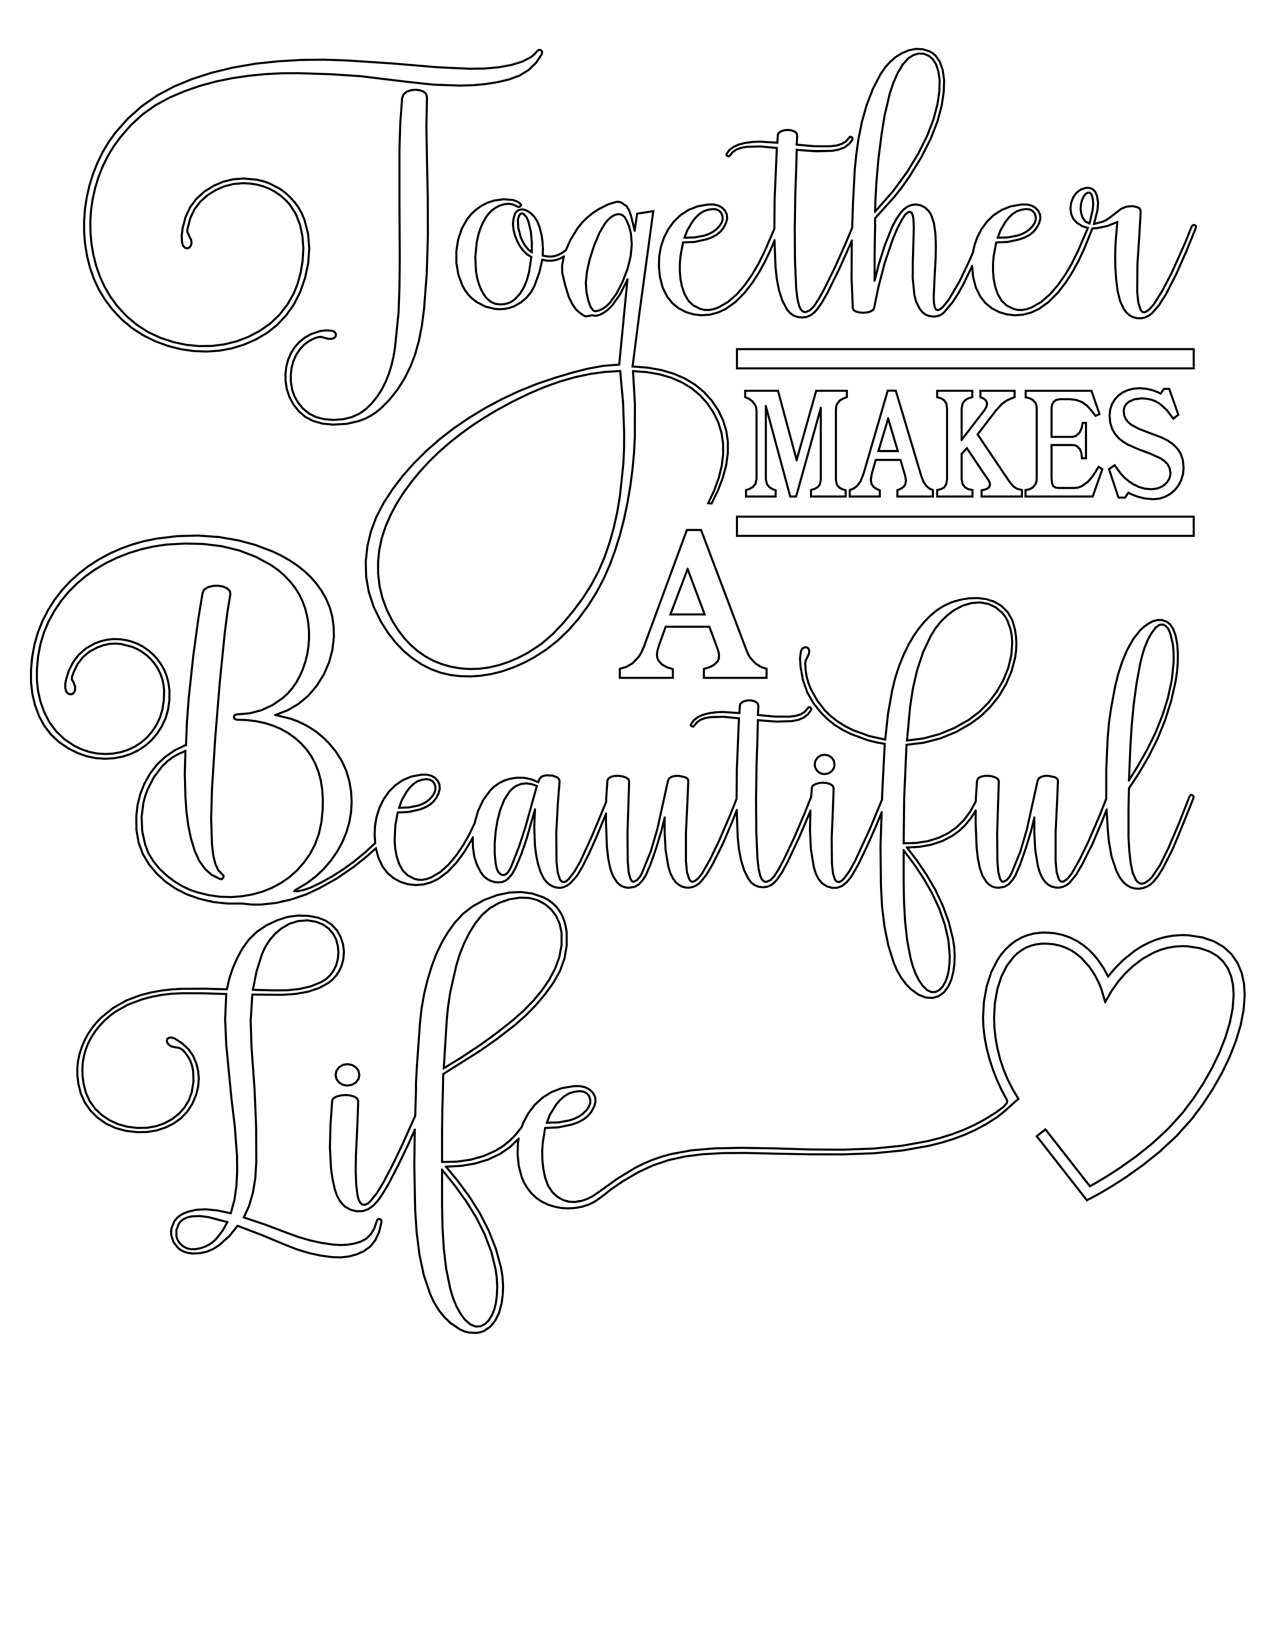 quotes about life coloring pages coloring pages quotes about life quotesgram life about coloring quotes pages